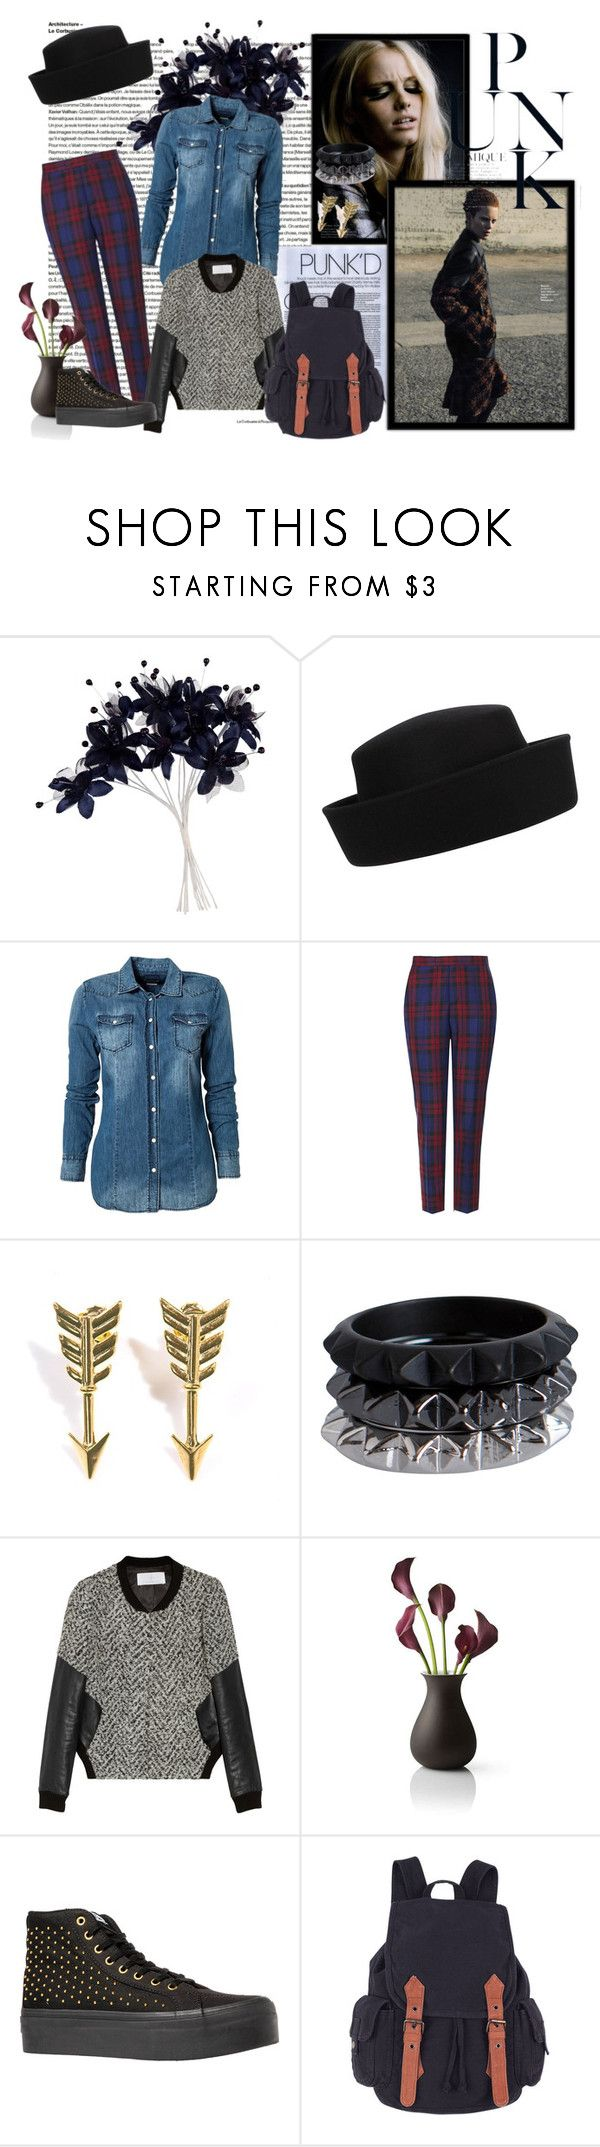 """""""Punk fashion"""" by jovanajankovic-it ❤ liked on Polyvore featuring John Lewis, Whiteley, Replay, Topshop, Jade Jagger, Pieces, Thakoon Addition, Menu and Vans"""